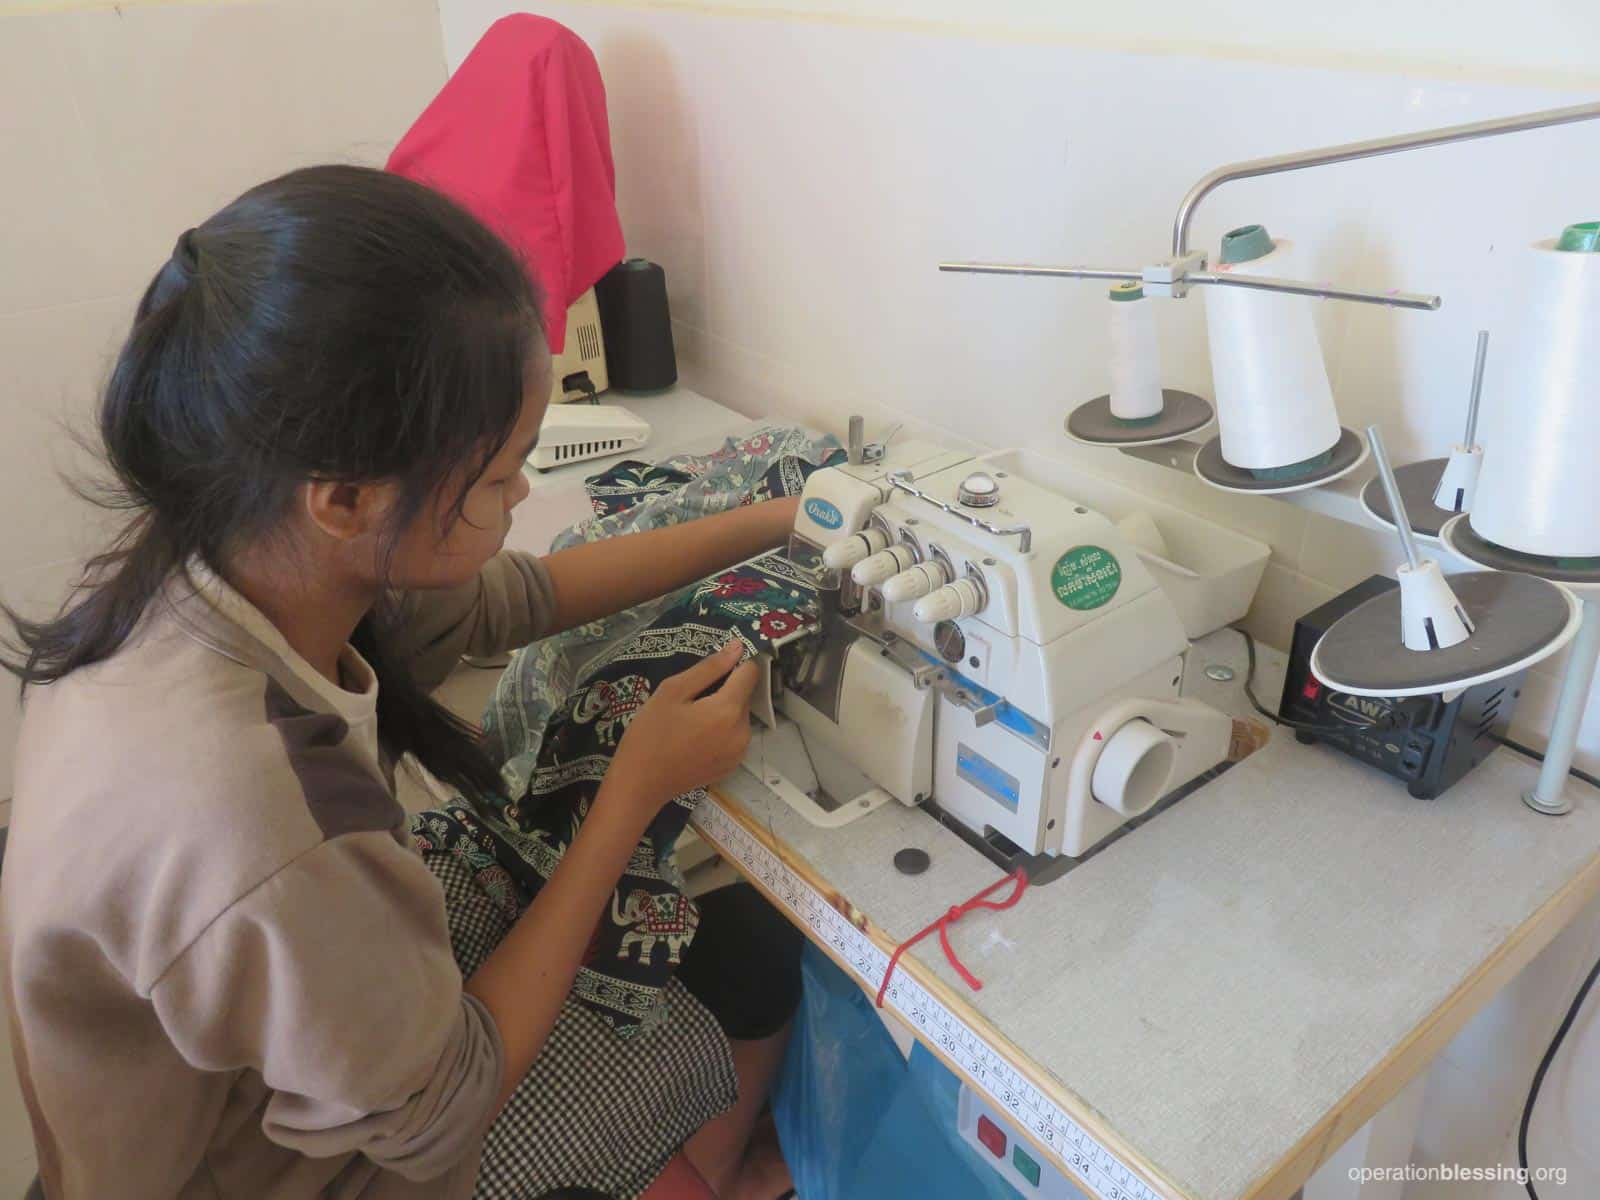 In August Happenings, a girl learns to sew at a workshop sponsored by Operation Blessing and partner, Apple of God's Eyes.